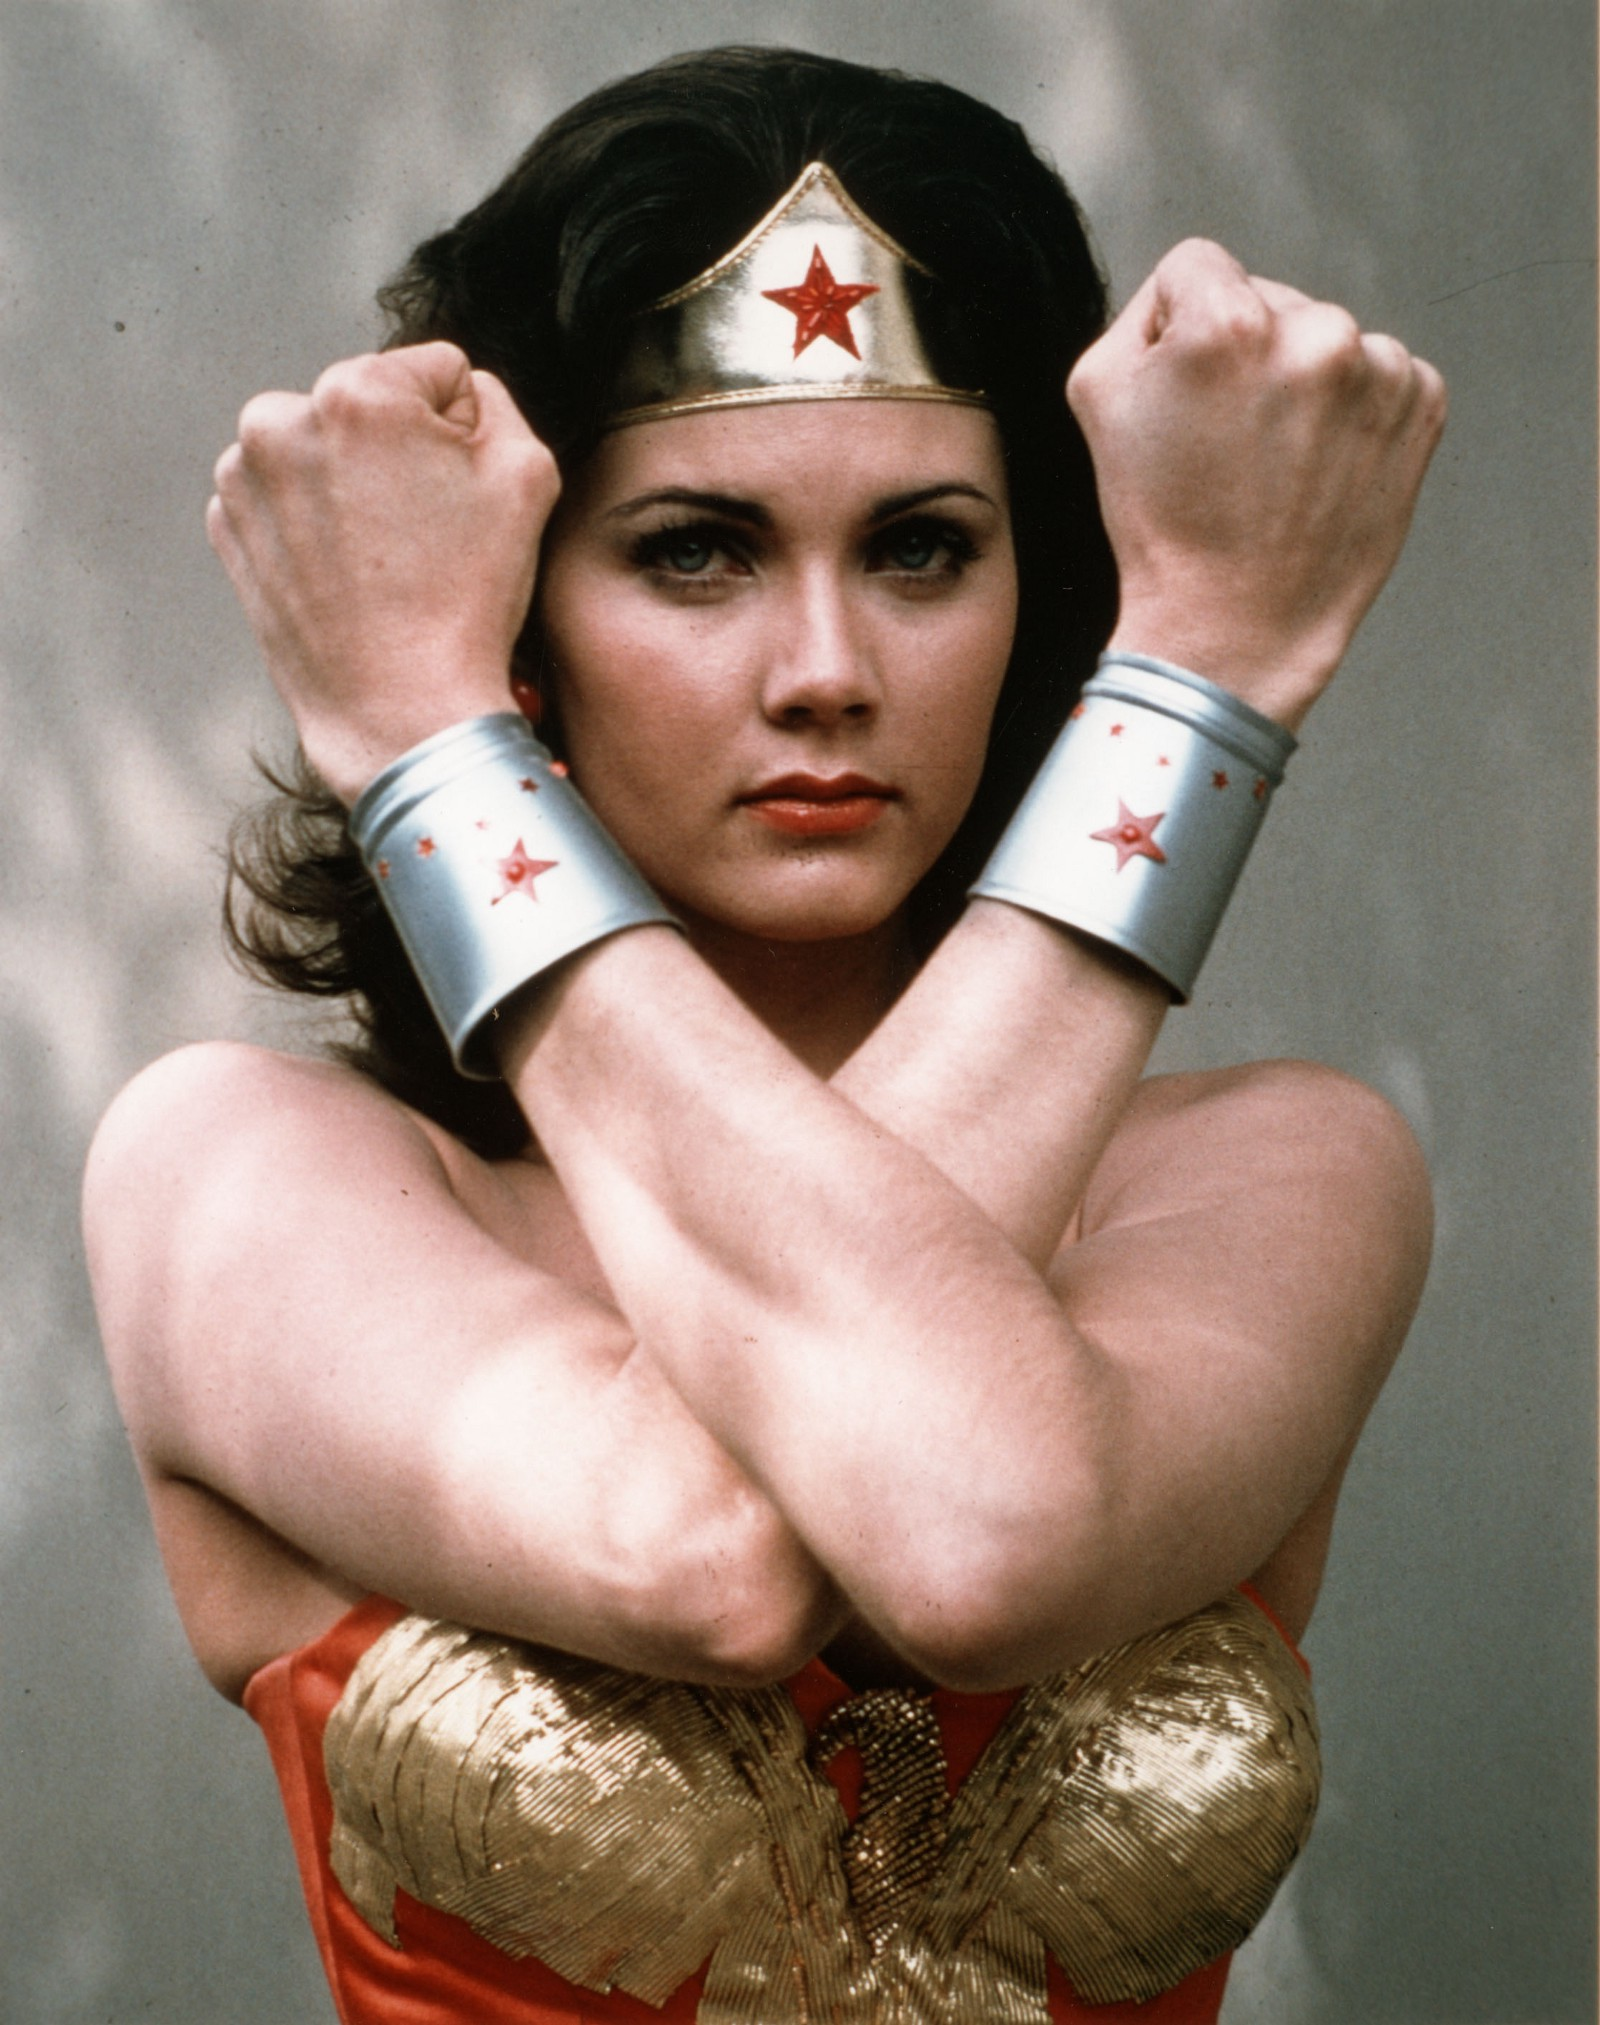 Wonder woman lynda carter fakes authoritative